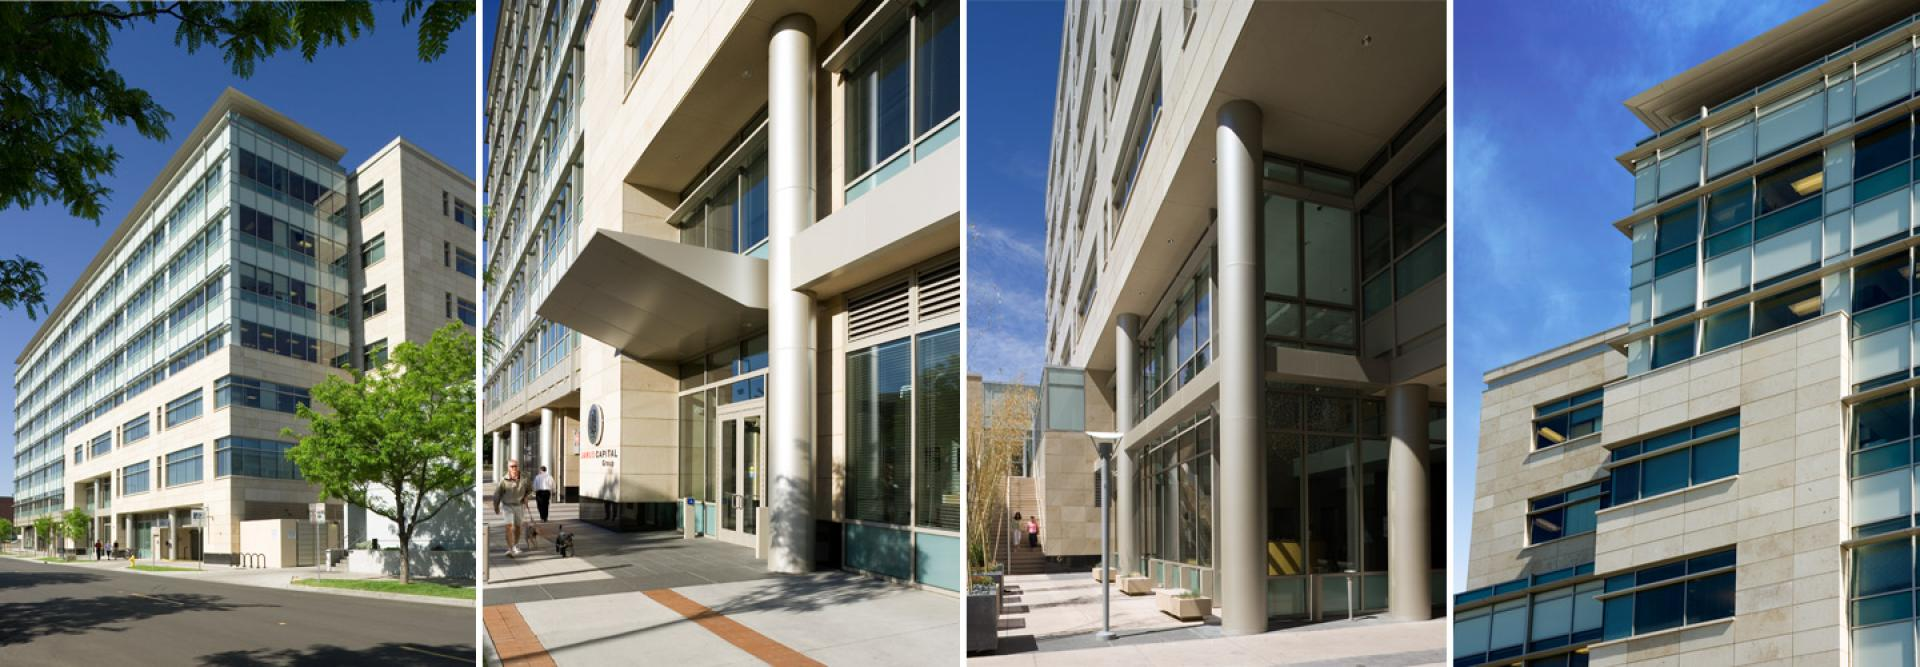 Janus Capital Group World Headquarters - Exterior